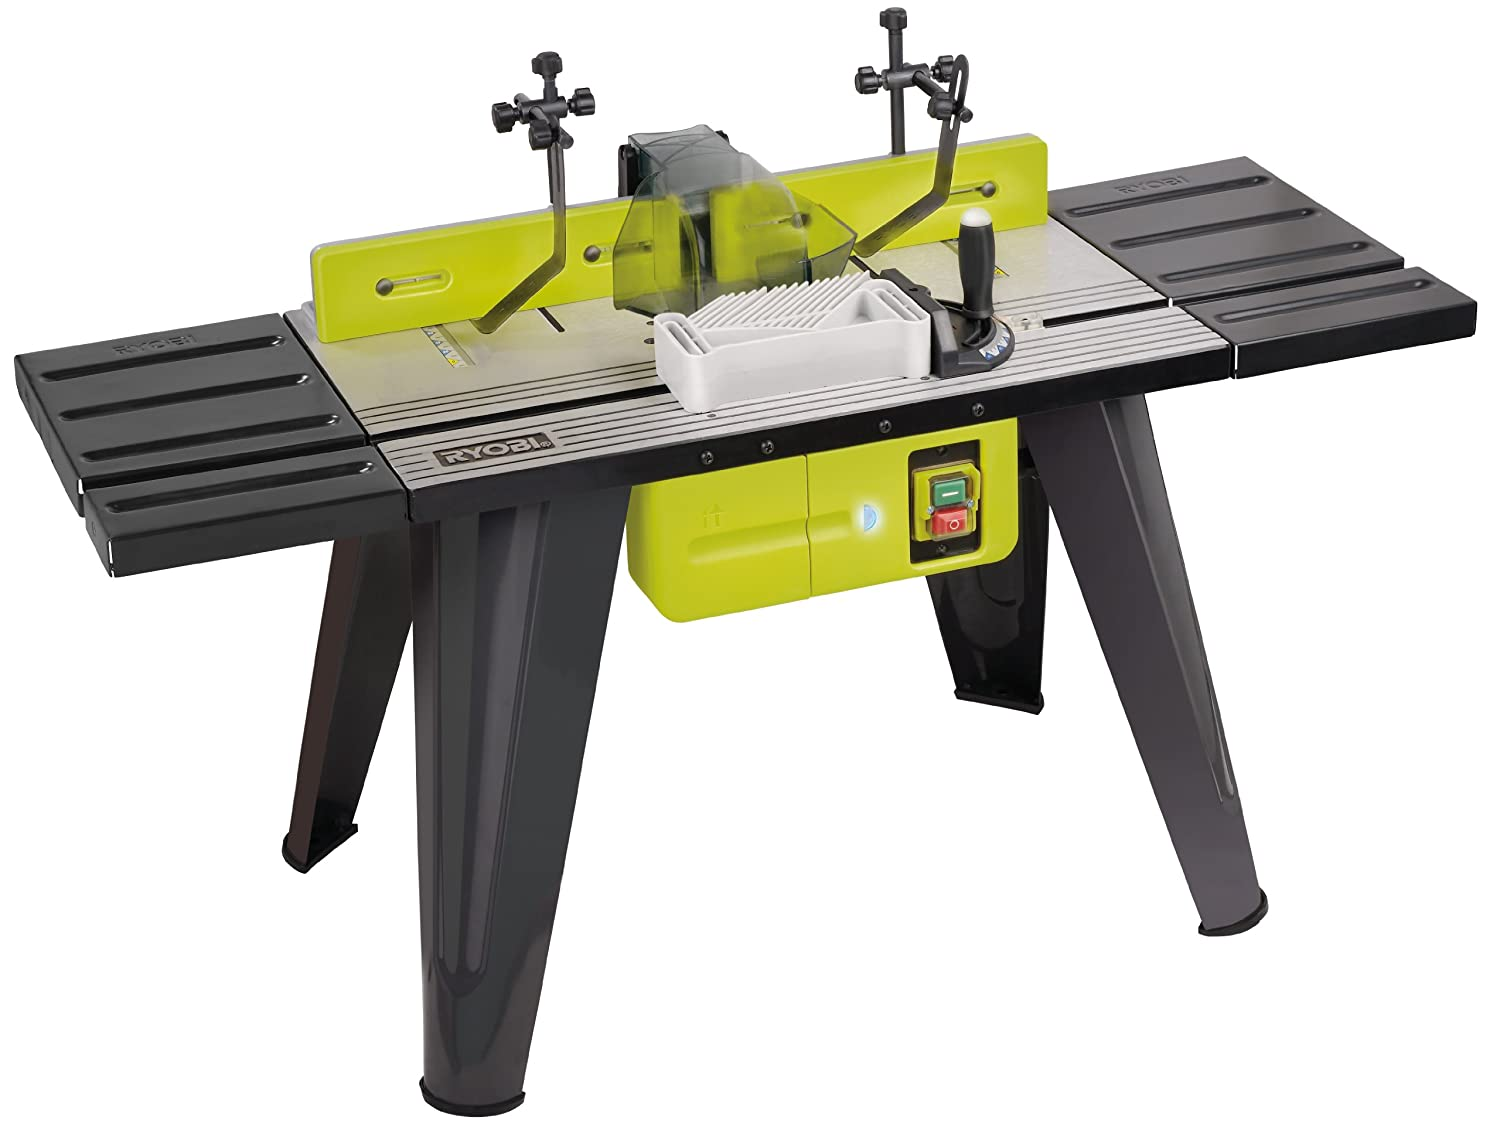 Ryobi router table old version amazon diy tools keyboard keysfo Image collections